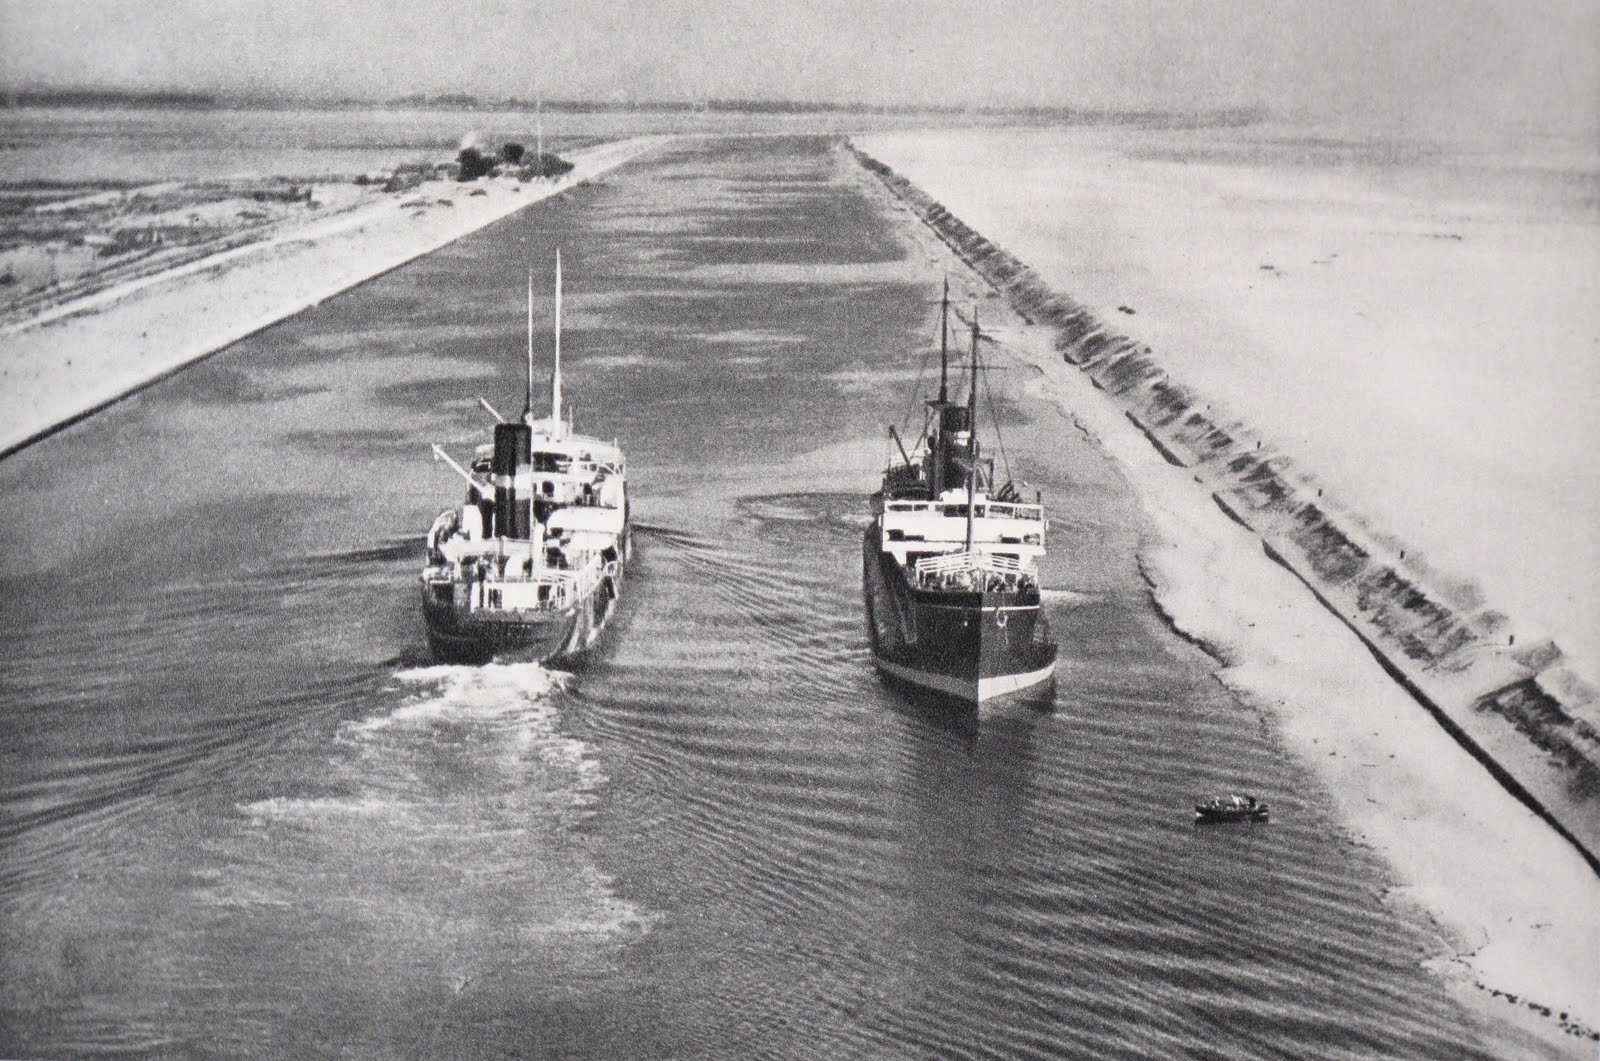 suez canal coursework One clear signal for the start of the scramble for africa was the british takeover of egypt in 1882 the imperial land grab began with the world's most amazing engineering feat at the time.